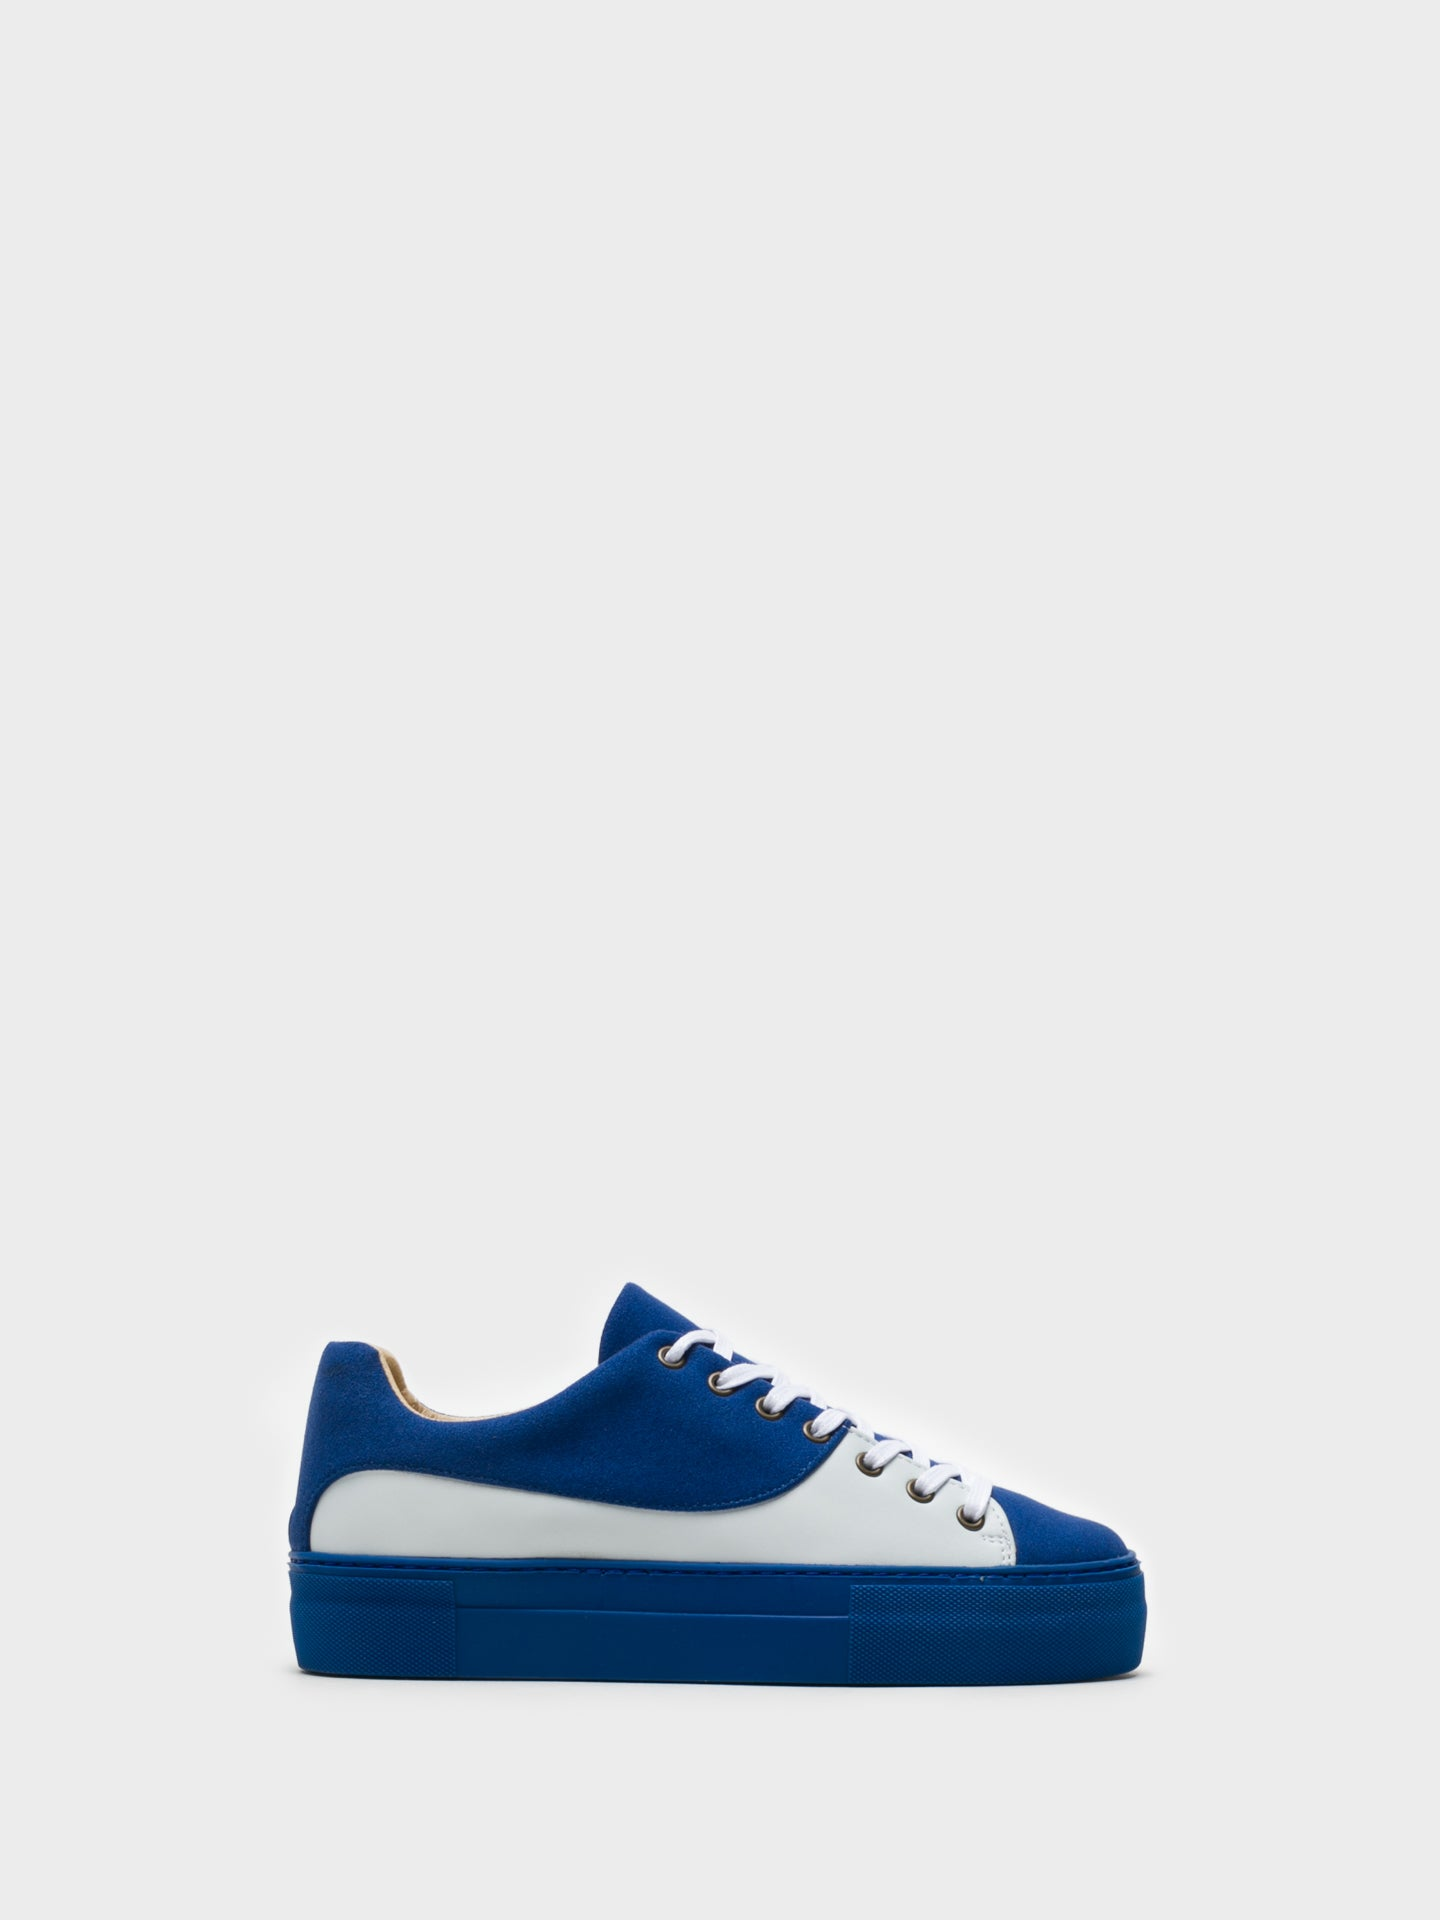 Marita Moreno Blue Lace-up Trainers